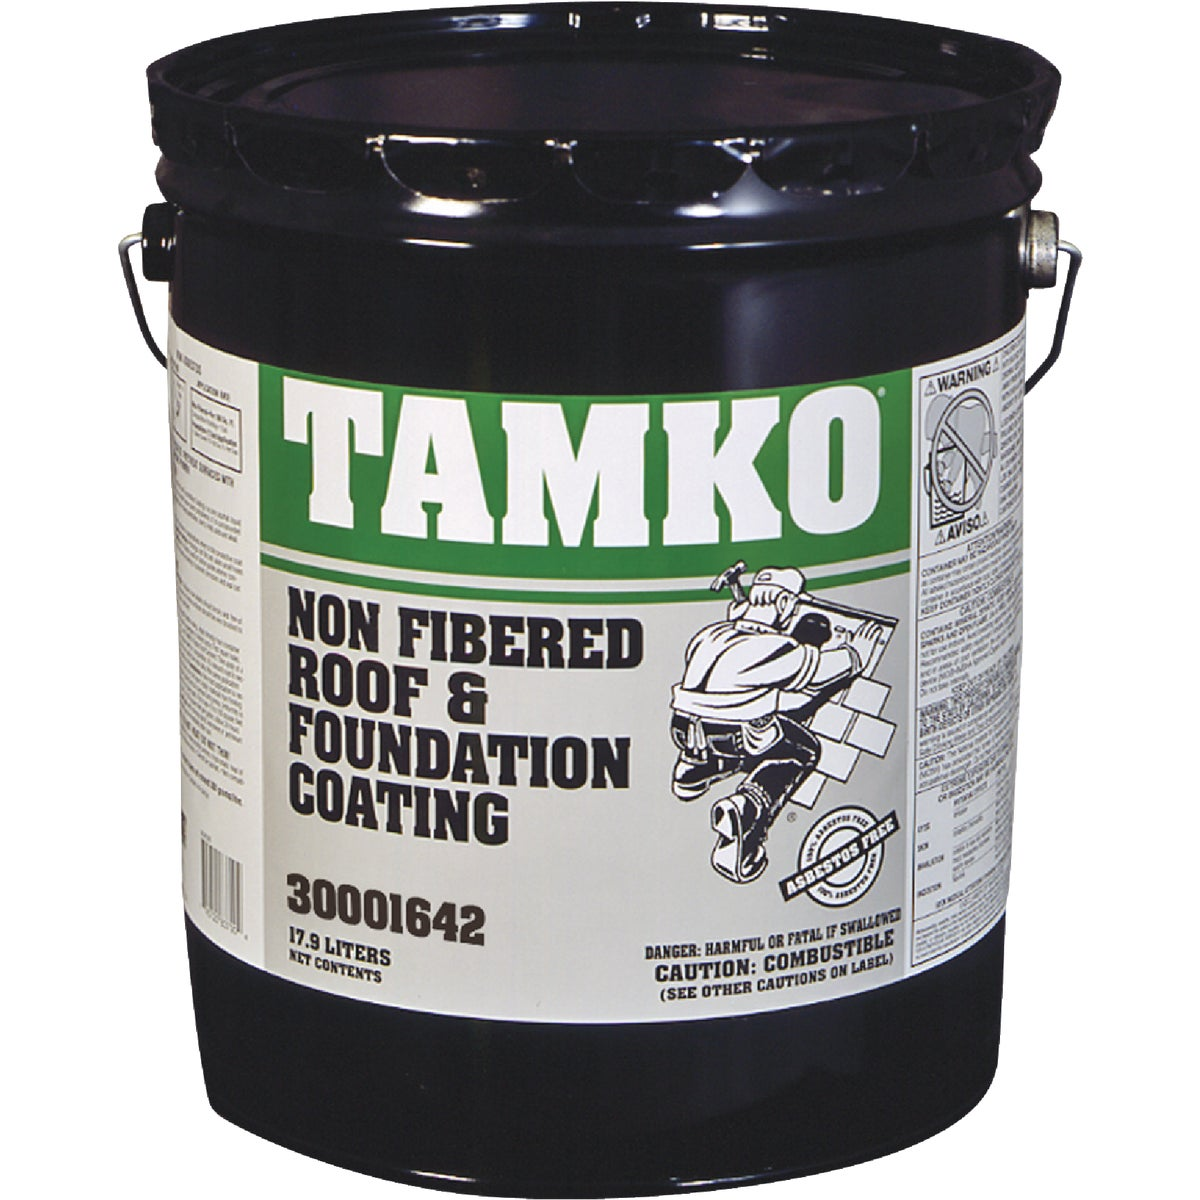 5GAL RF/FOUNDATN COATING - 30001642 by Tamko Bldg Prod Inc